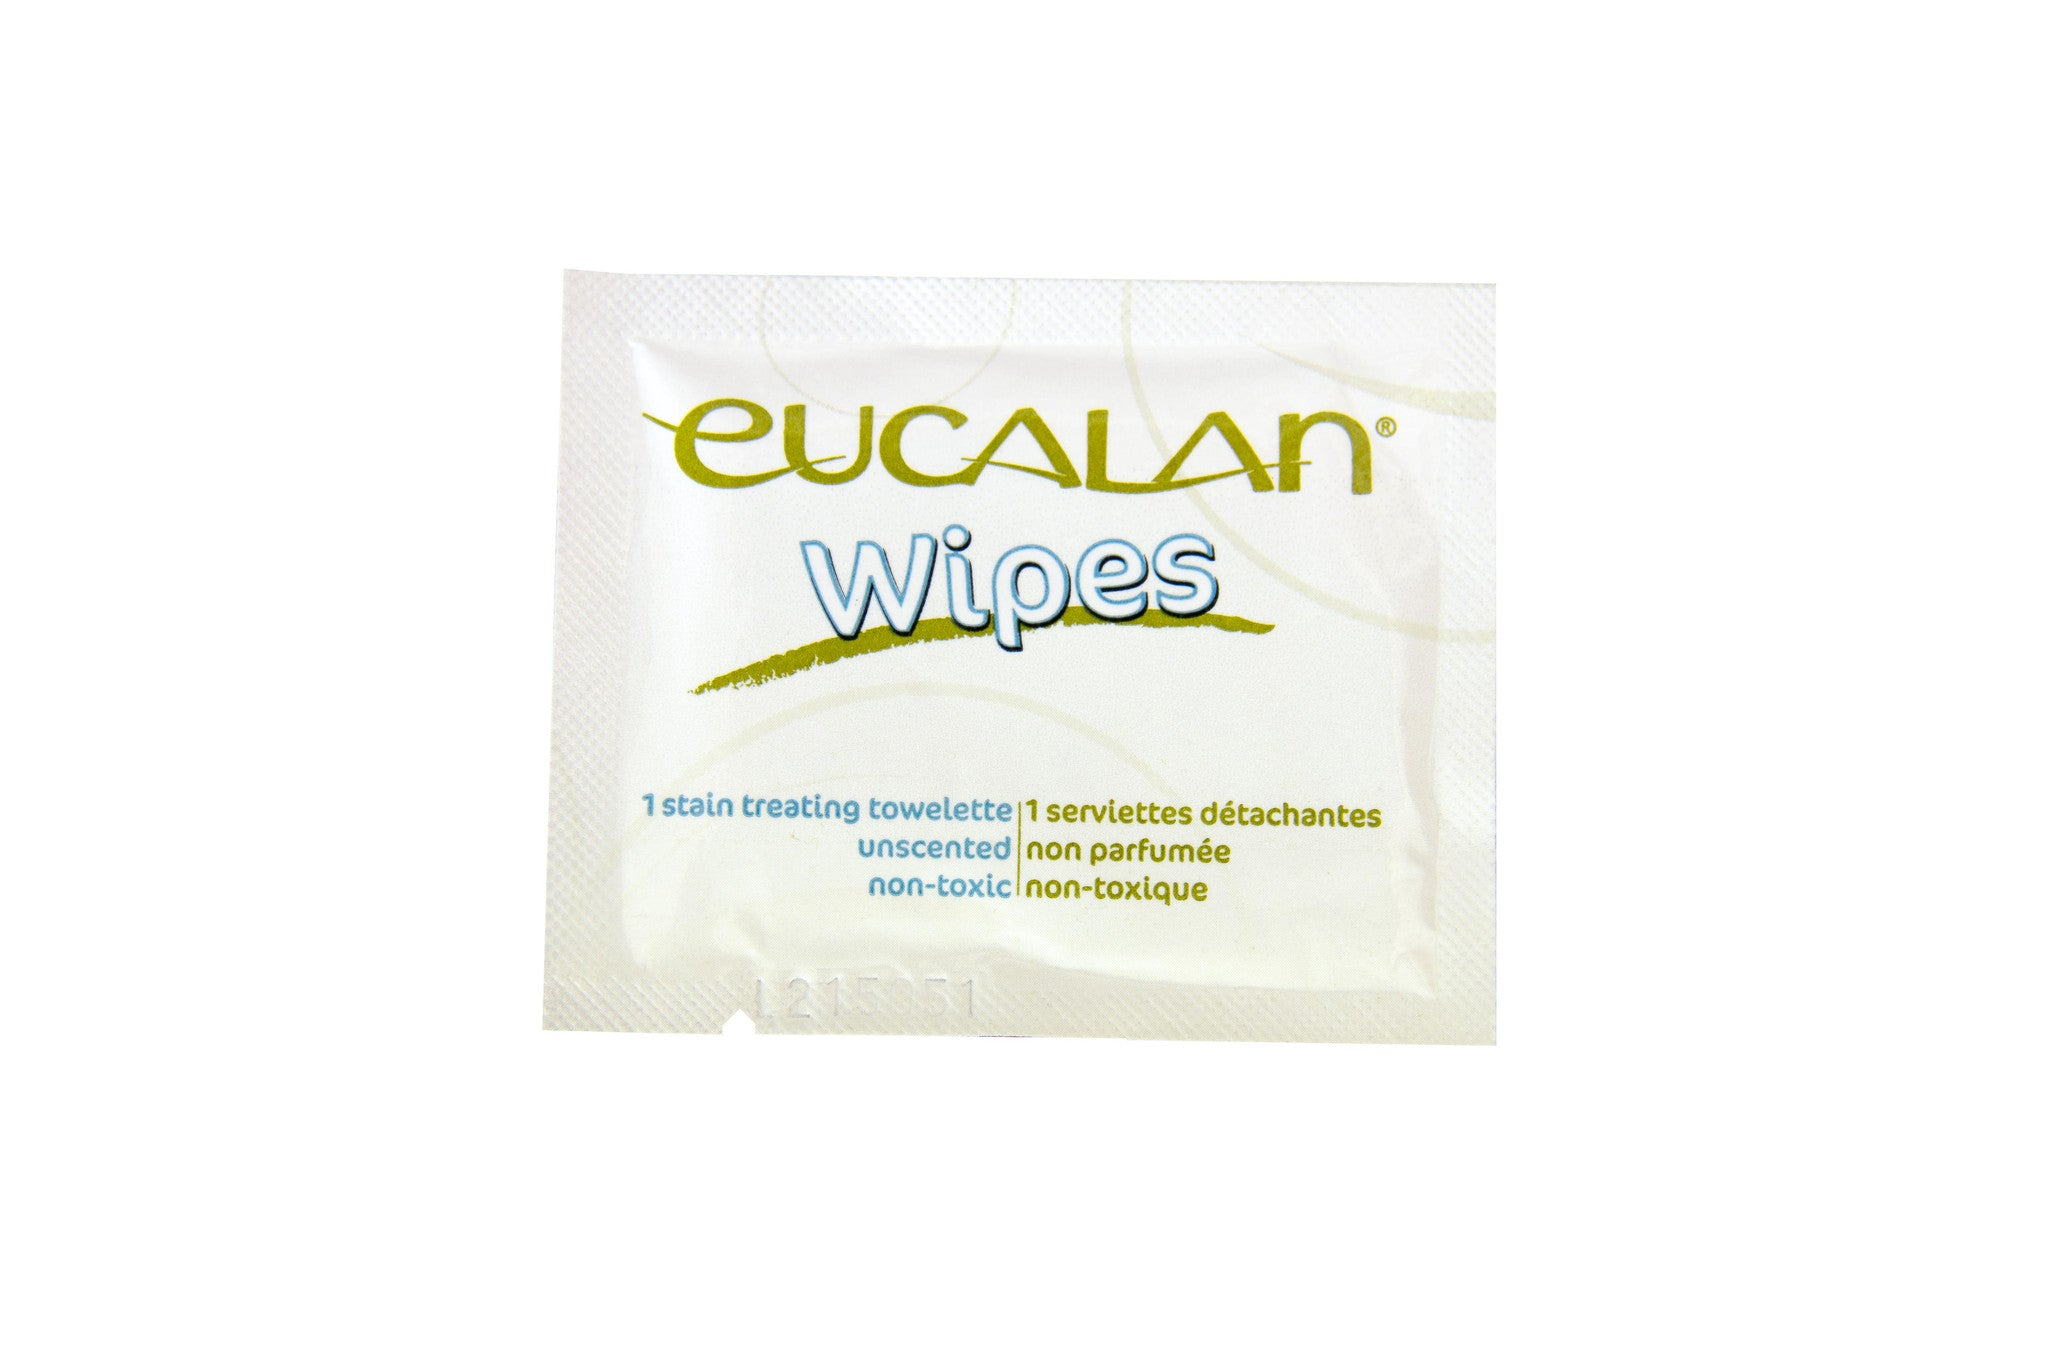 Eucalan Individual Towelettes - Knickers & Pearls Boutique